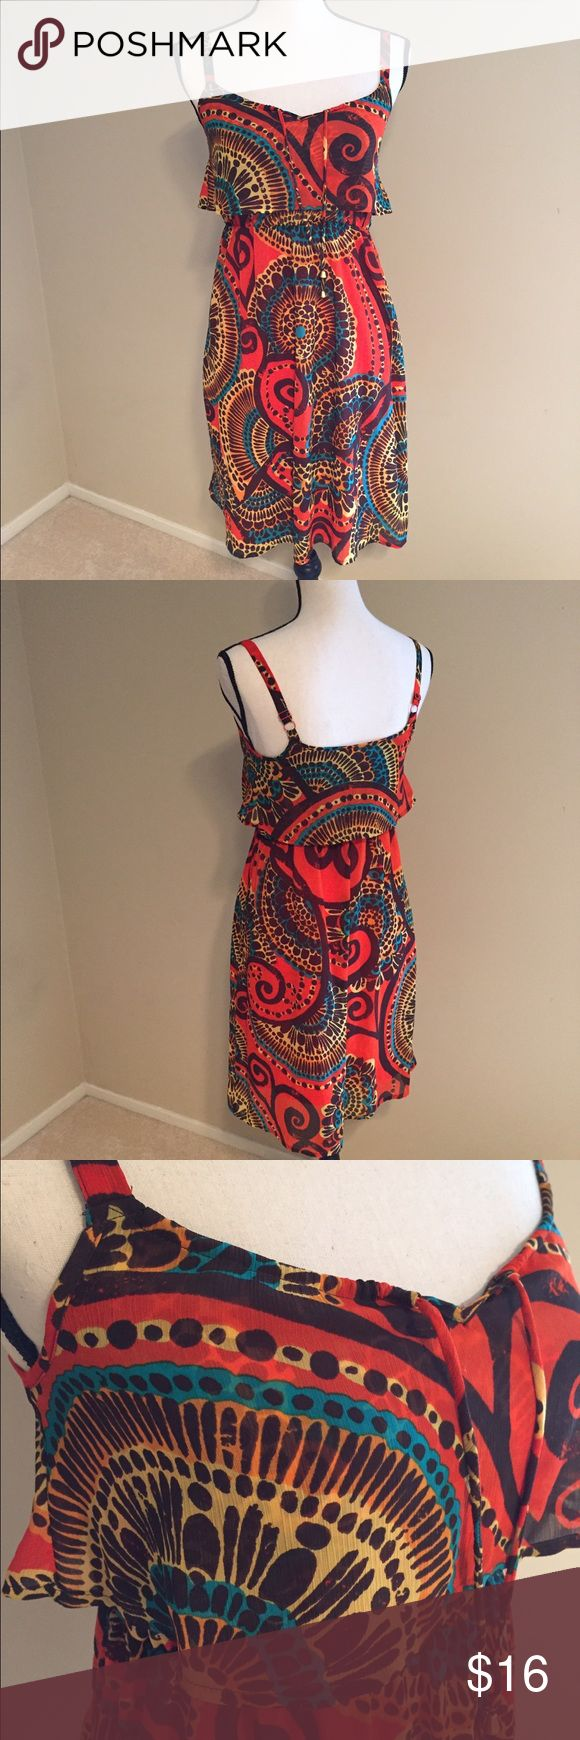 Madison orange sheer gauzy dress petite small Adorable dress perfect for the summer. In excellent condition! 100% polyester. The top is not lined but the bottom half is. Chest is 14.5 inches and the length is 35.5 inches Madison Dresses Mini